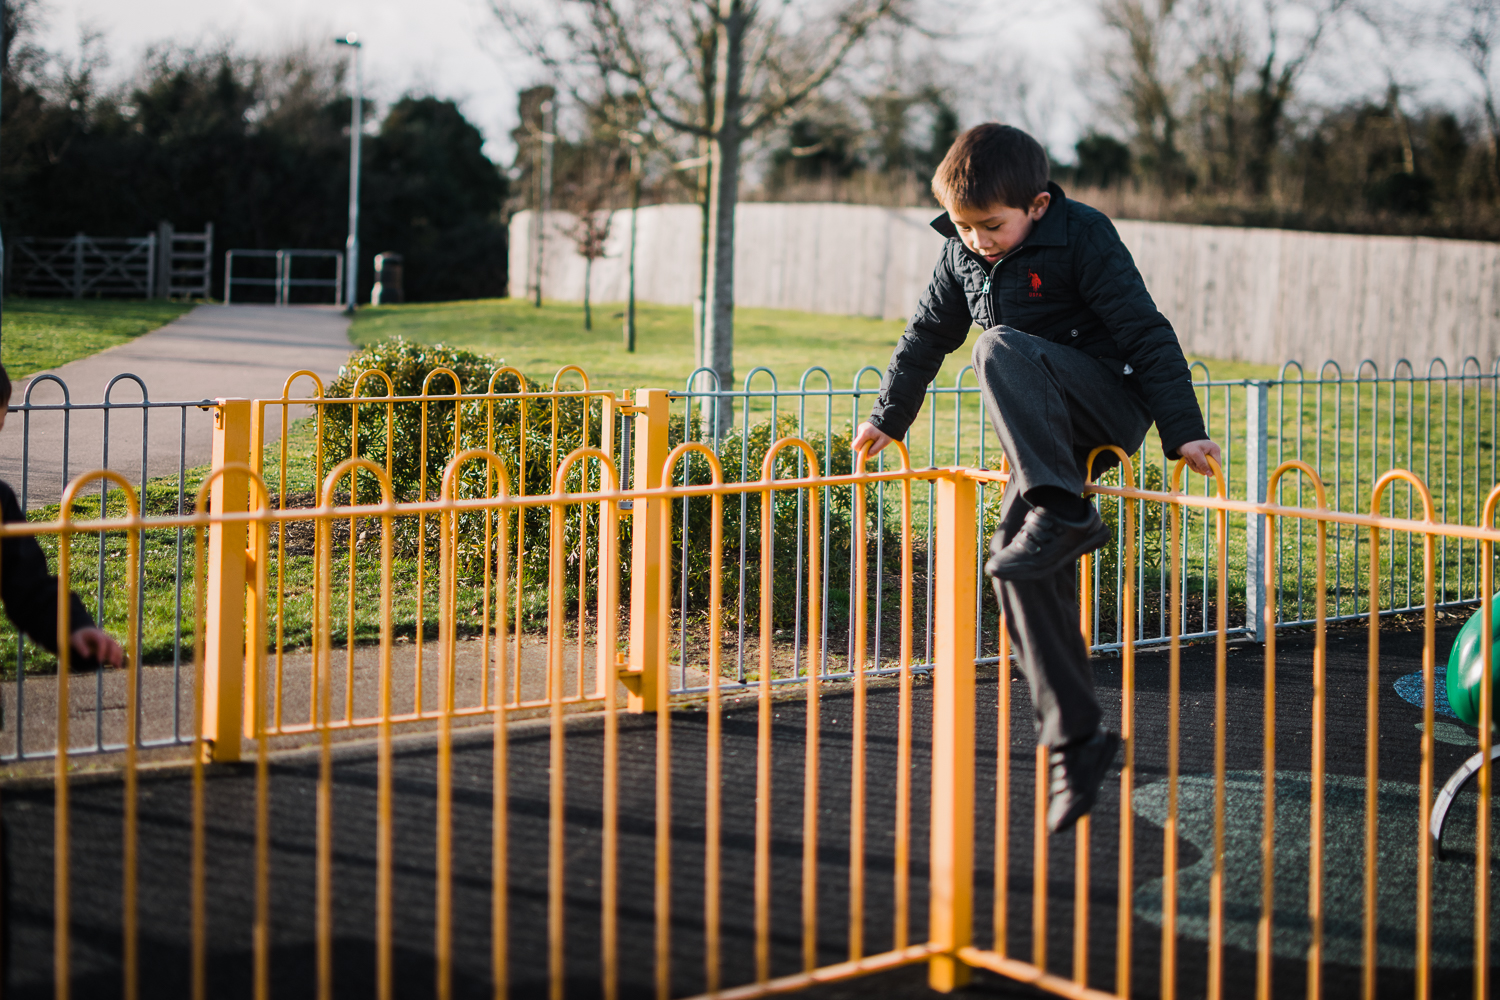 A boy climbs over a yellow railing in the playground